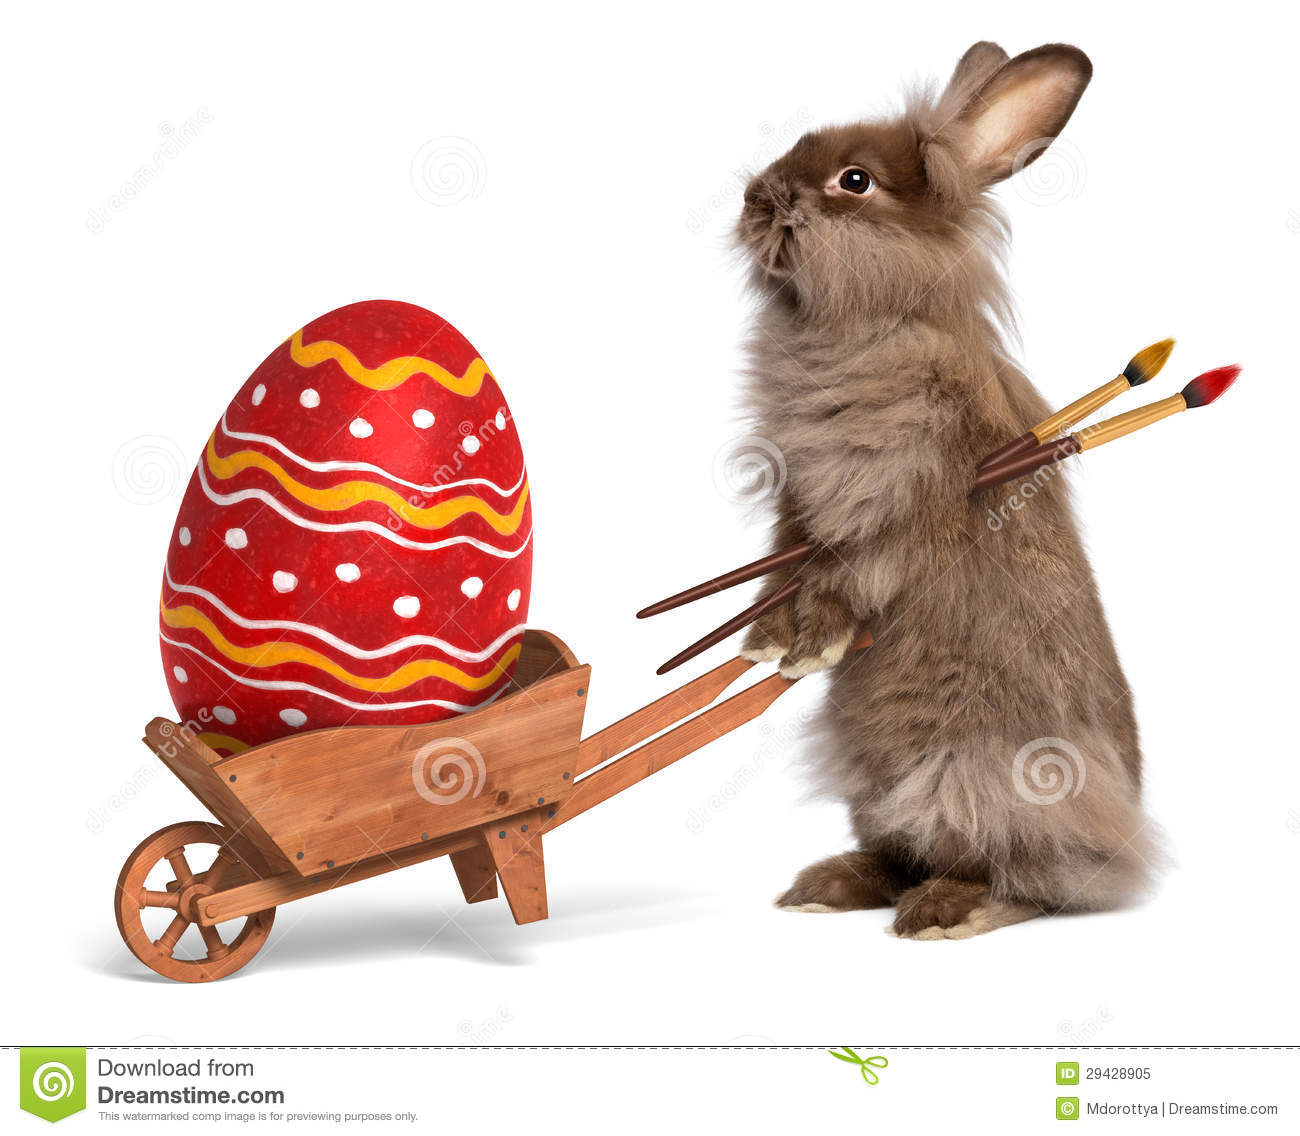 Funny rabbit funny rabbit pictures pictures of rabbits funny - Funny Easter Bunny Rabbit With A Wheelbarrow And A Red Easter Eg Royalty Free Stock Photo